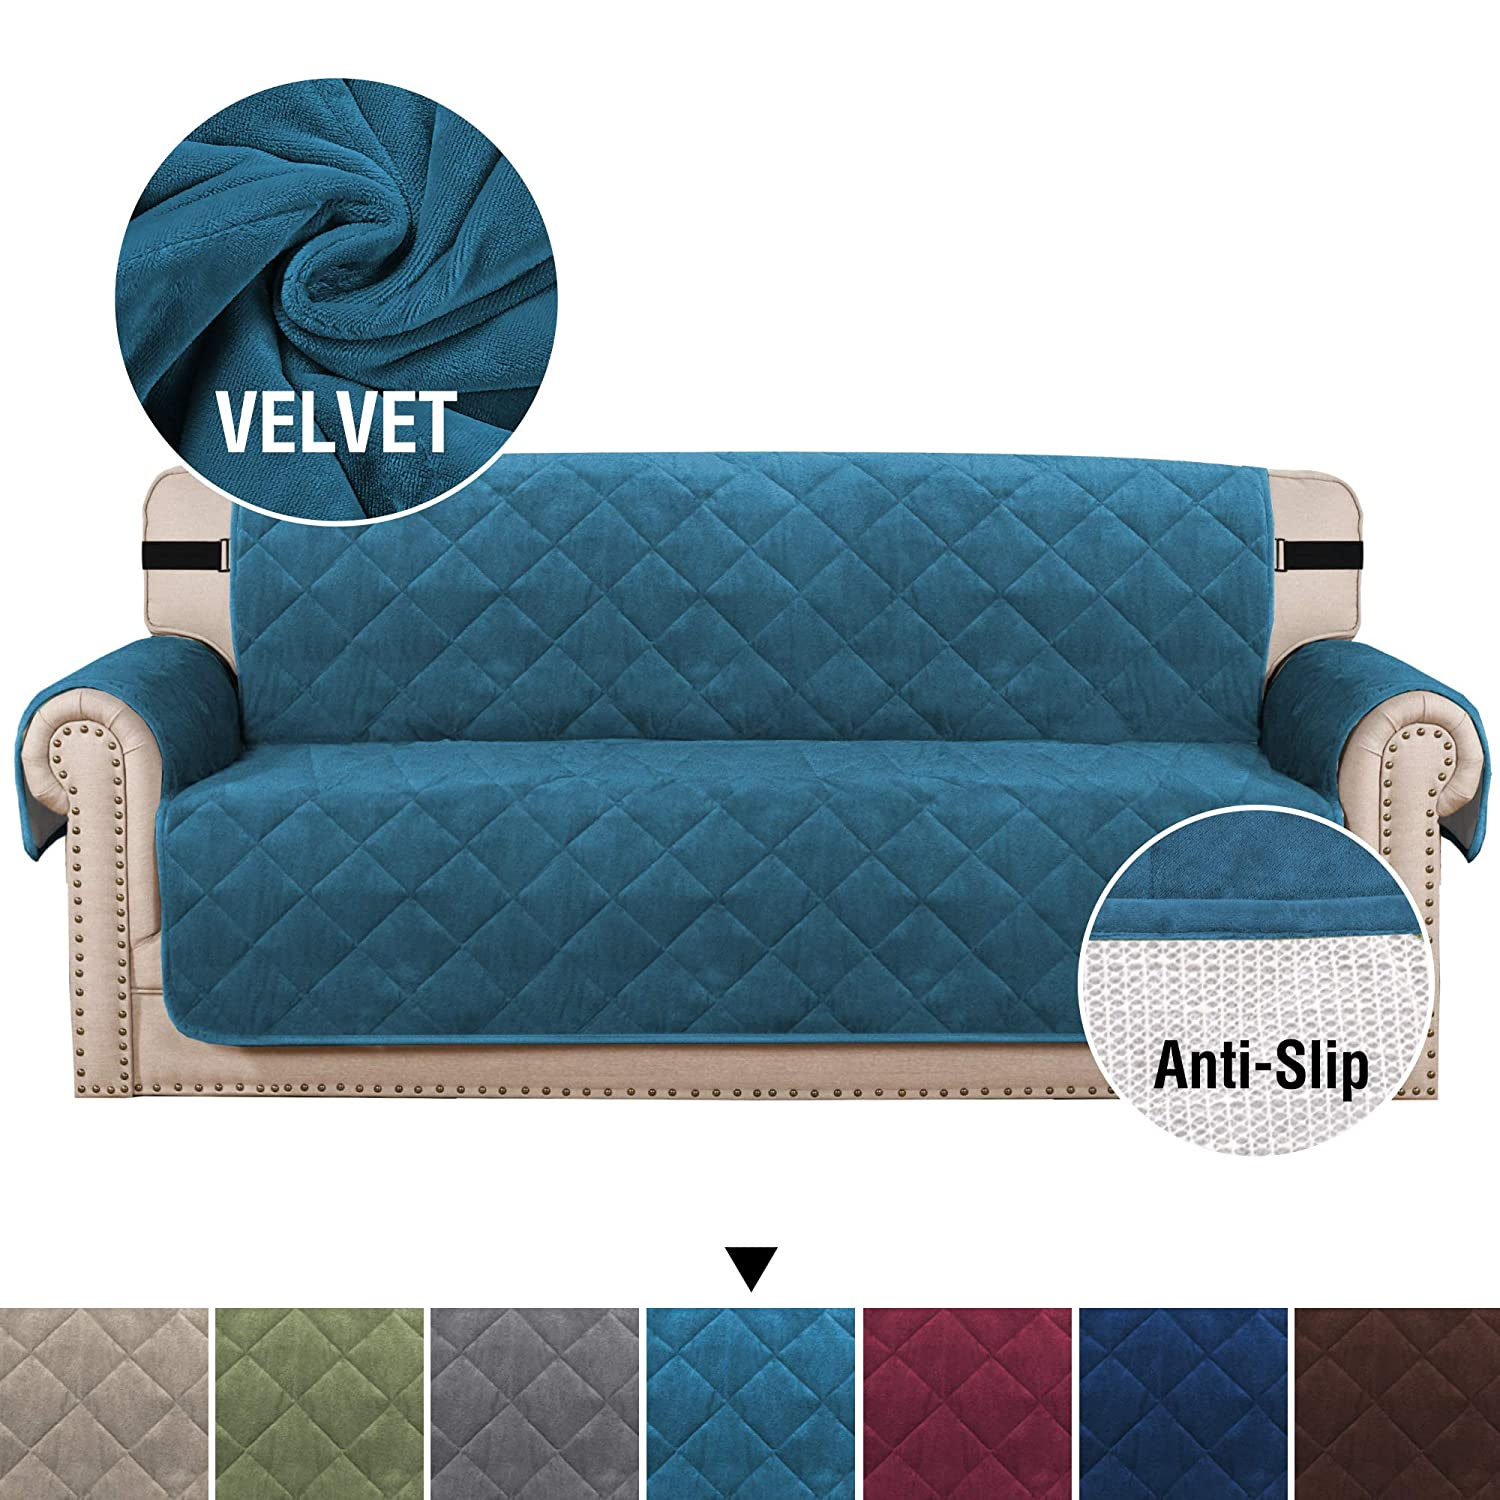 """H.VERSAILTEX Velvet Quilted Sofa Cover Couch Covers for Dogs, Slip Resistant Furniture Covers for Pets, 2"""" Straps/Hook and Side Pockets, Soft and Smooth Sofa Slipcover Protector (Sofa: Peacock Blue)"""